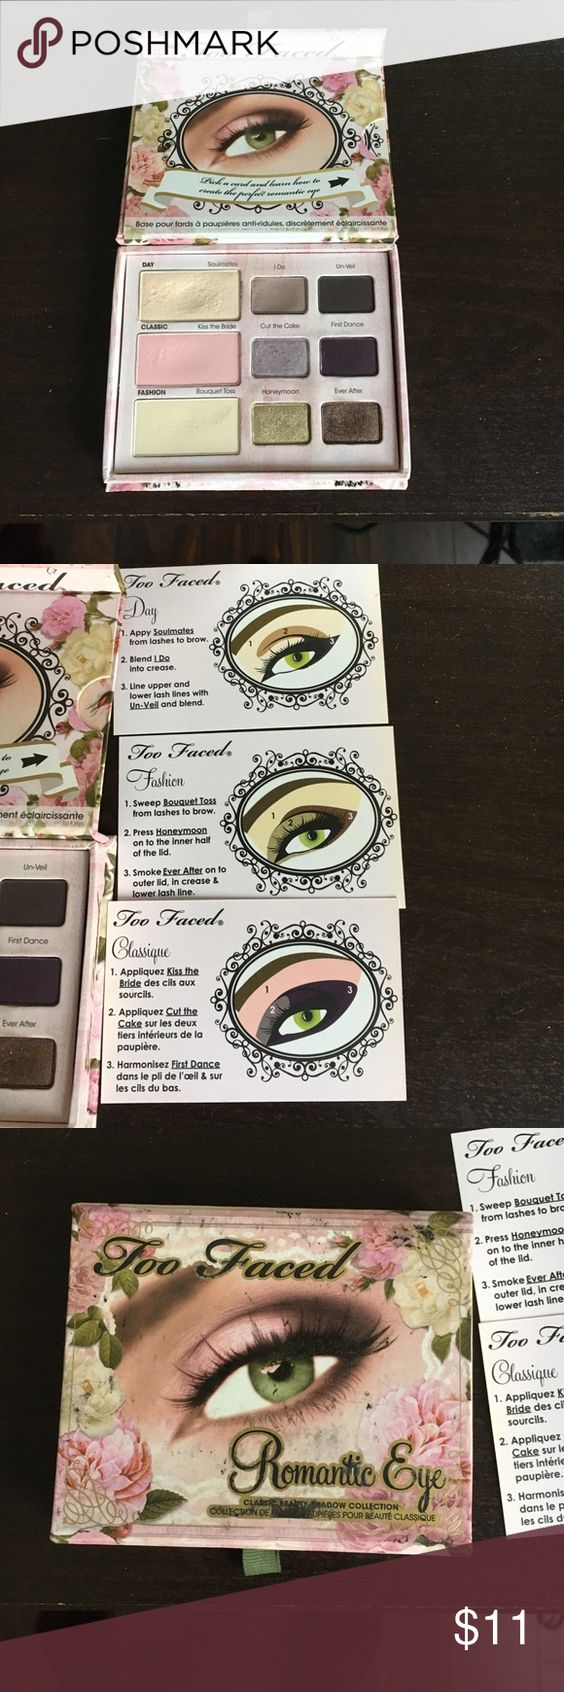 Too faced romantic eye eyeshadow pallet Only really gently used 2 colors. Comes with eye makeup instructions for various looks. Too Faced Makeup Eyeshadow